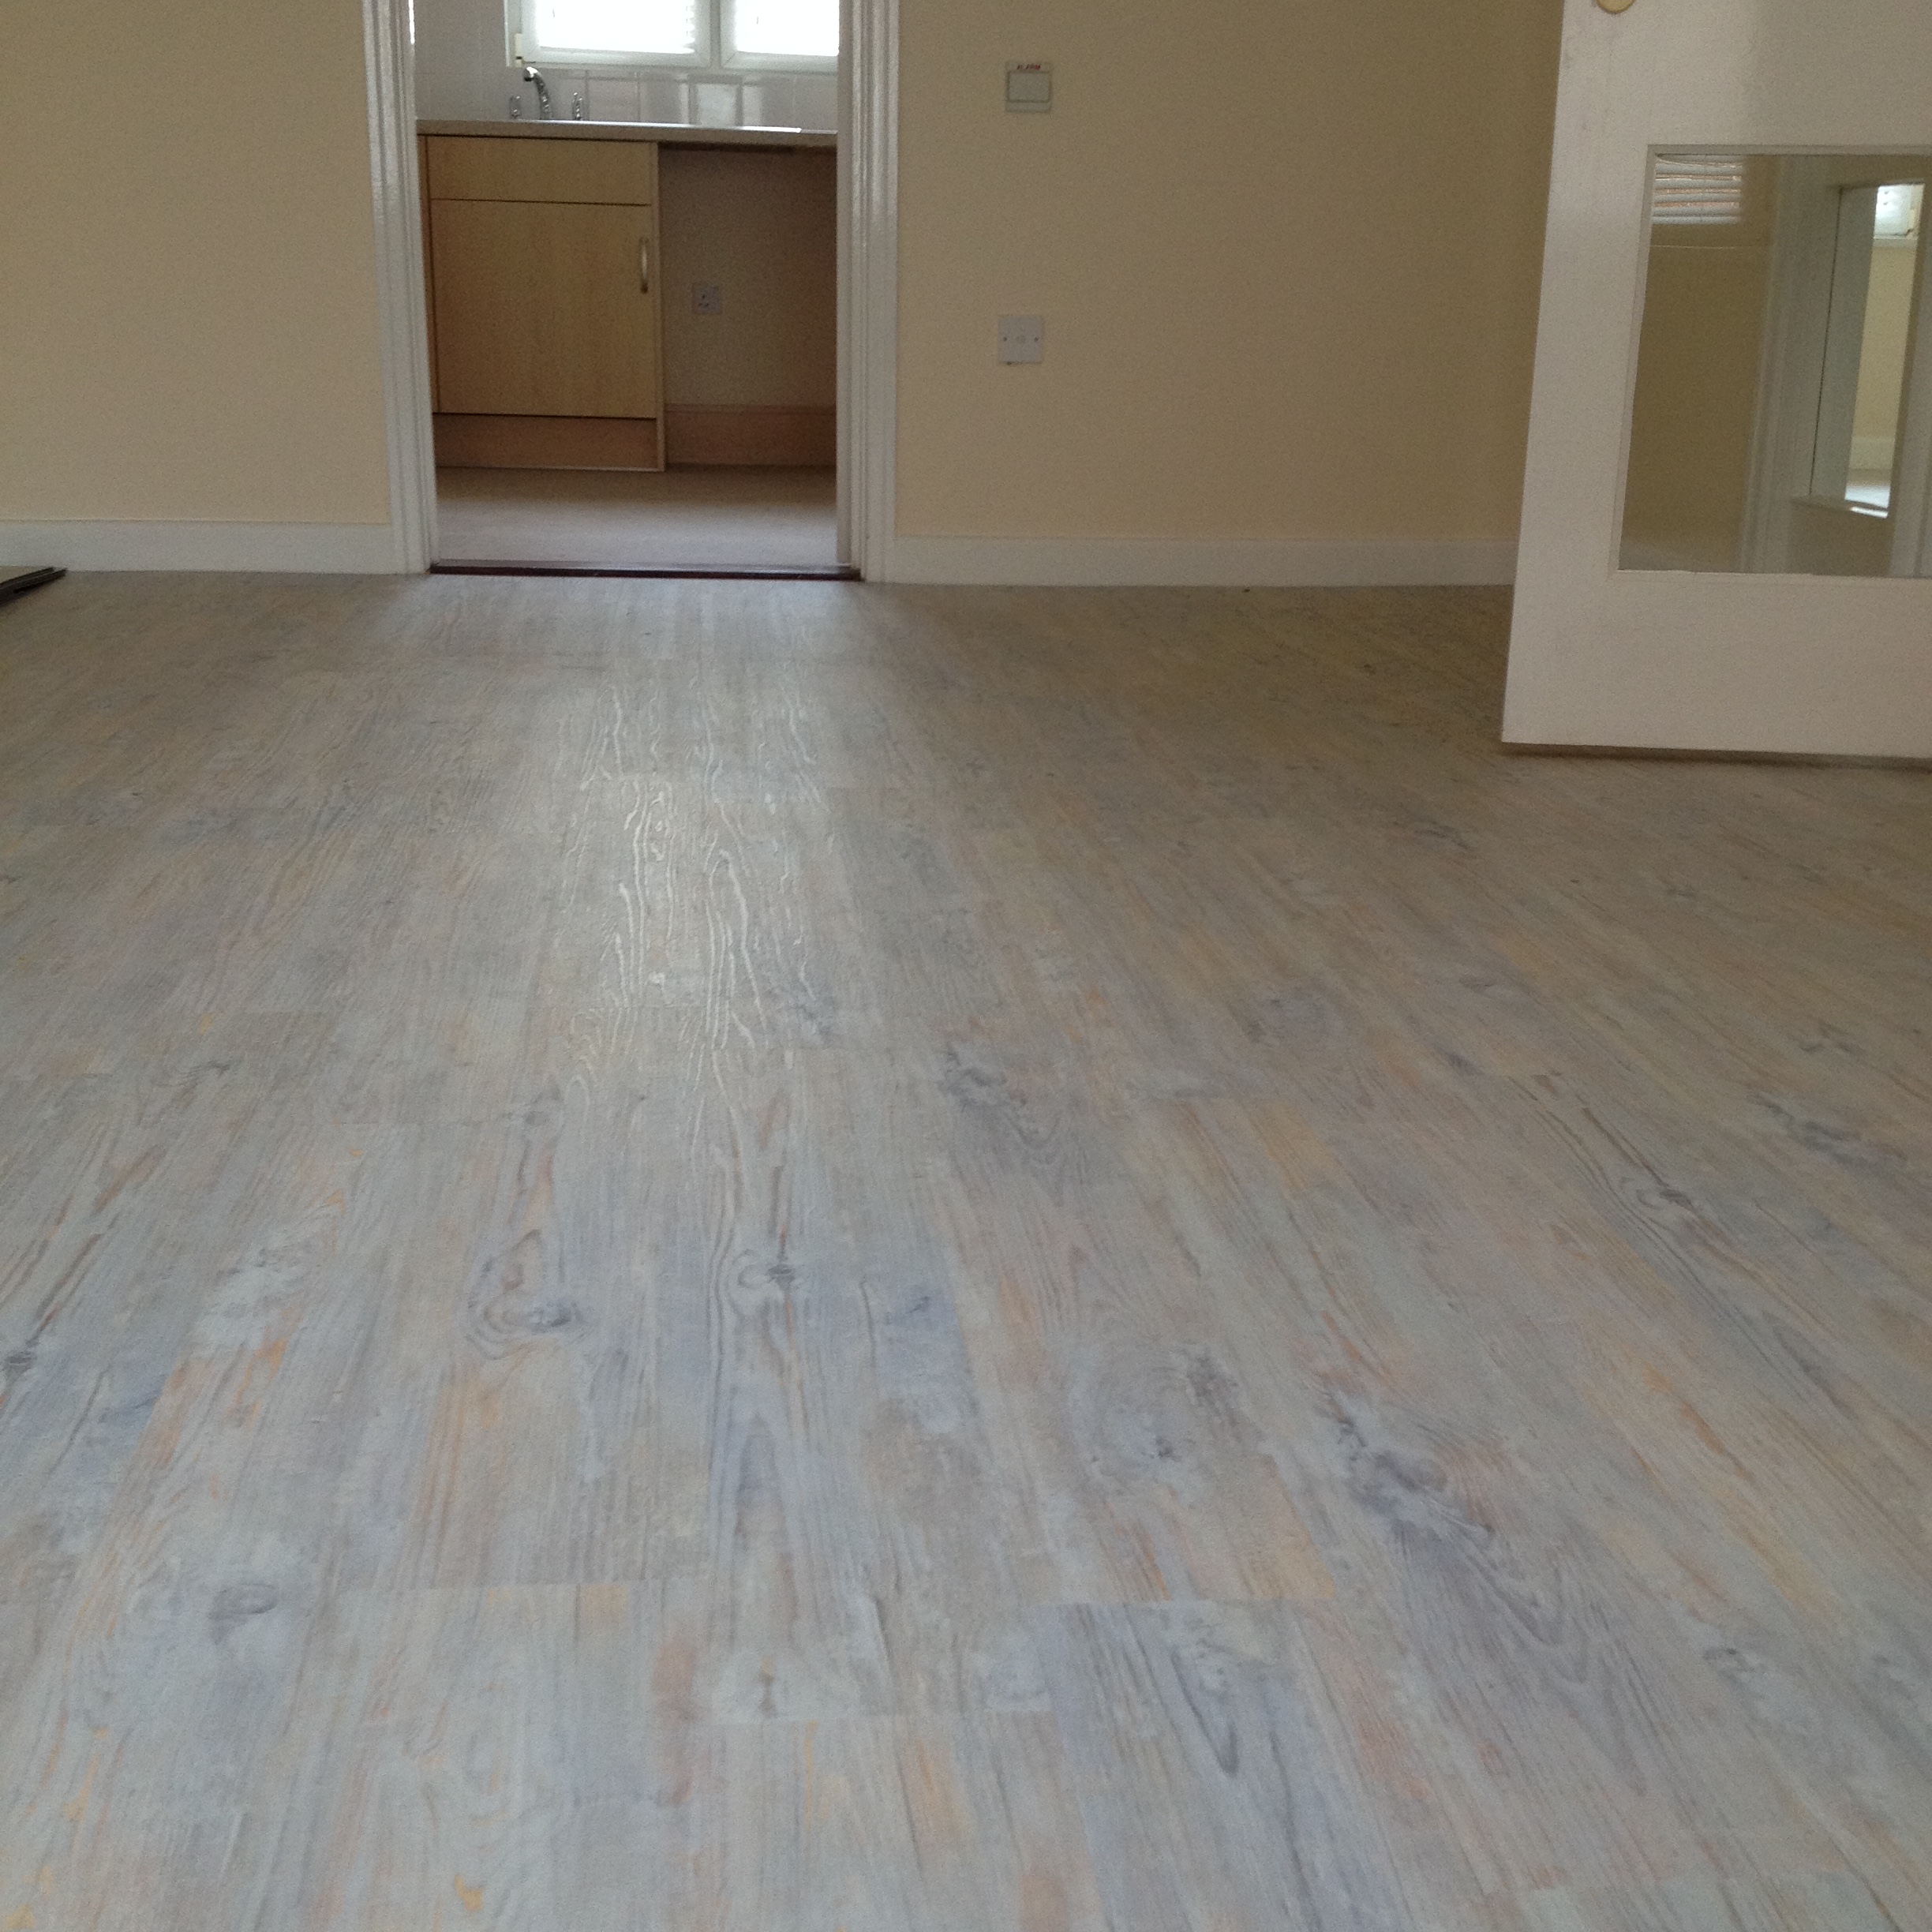 Camaro-Loc LVT Flooring, Smoke Limed Oak (3).JPG